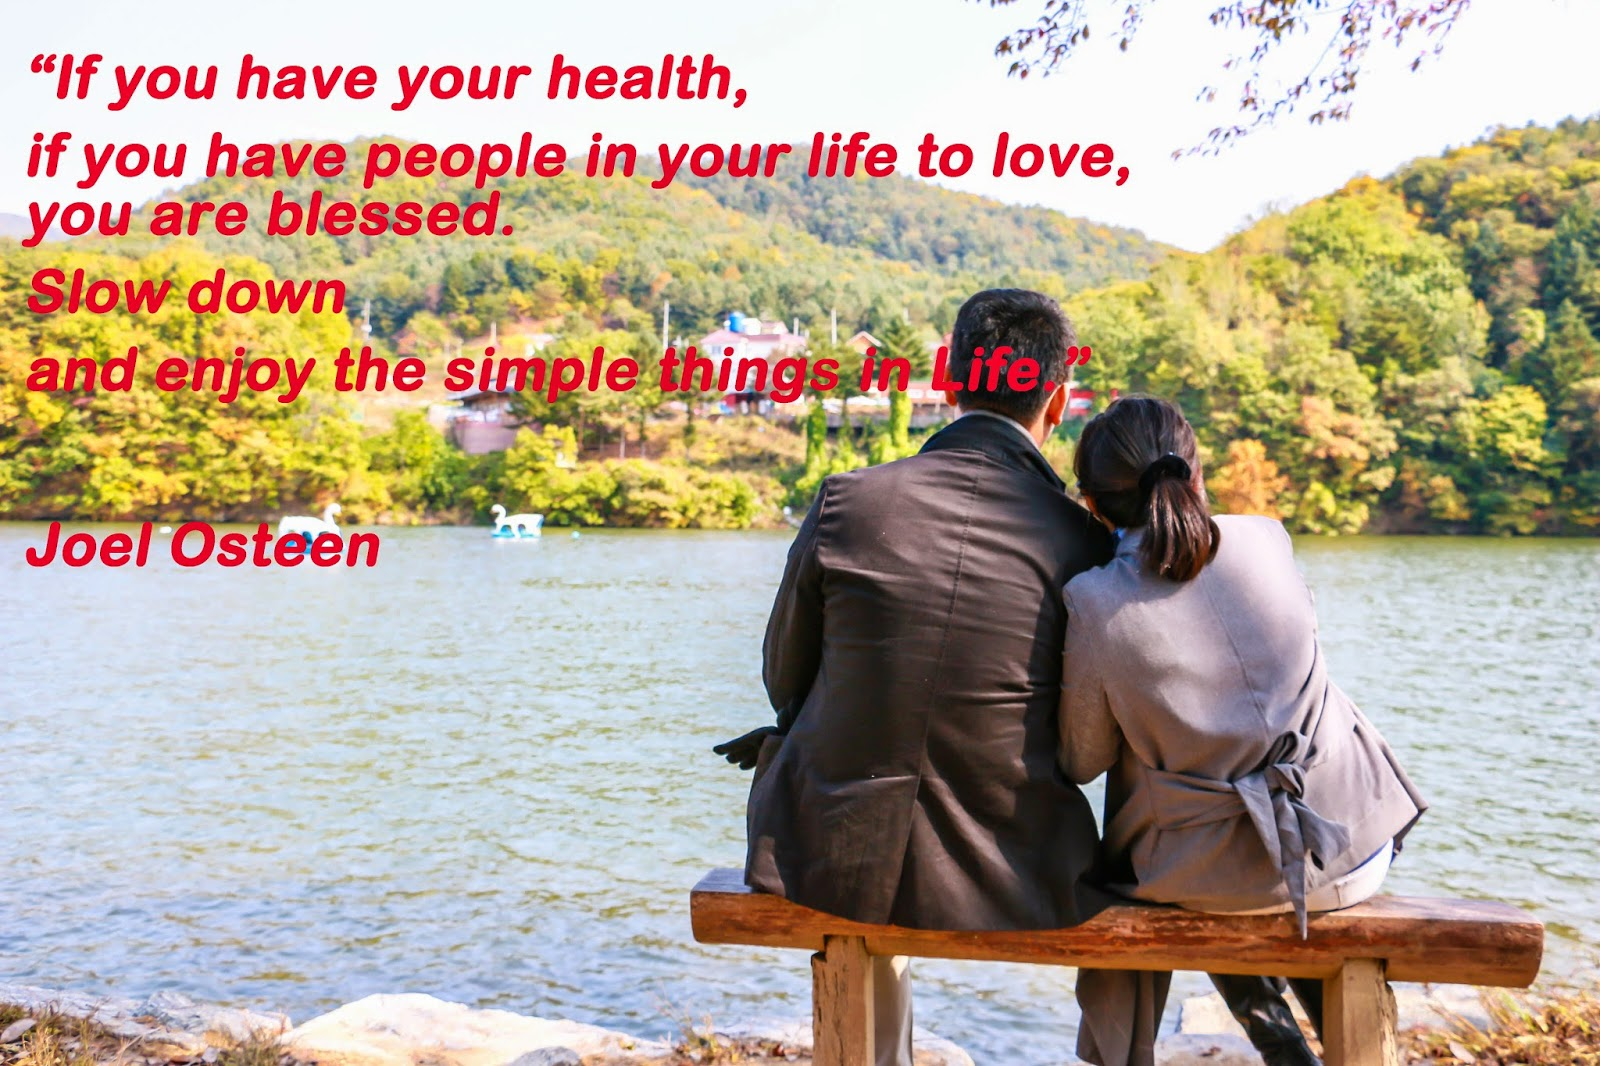 Joel Osteen Quotes On Love Yami Inspirational Quotesjoel Osteen